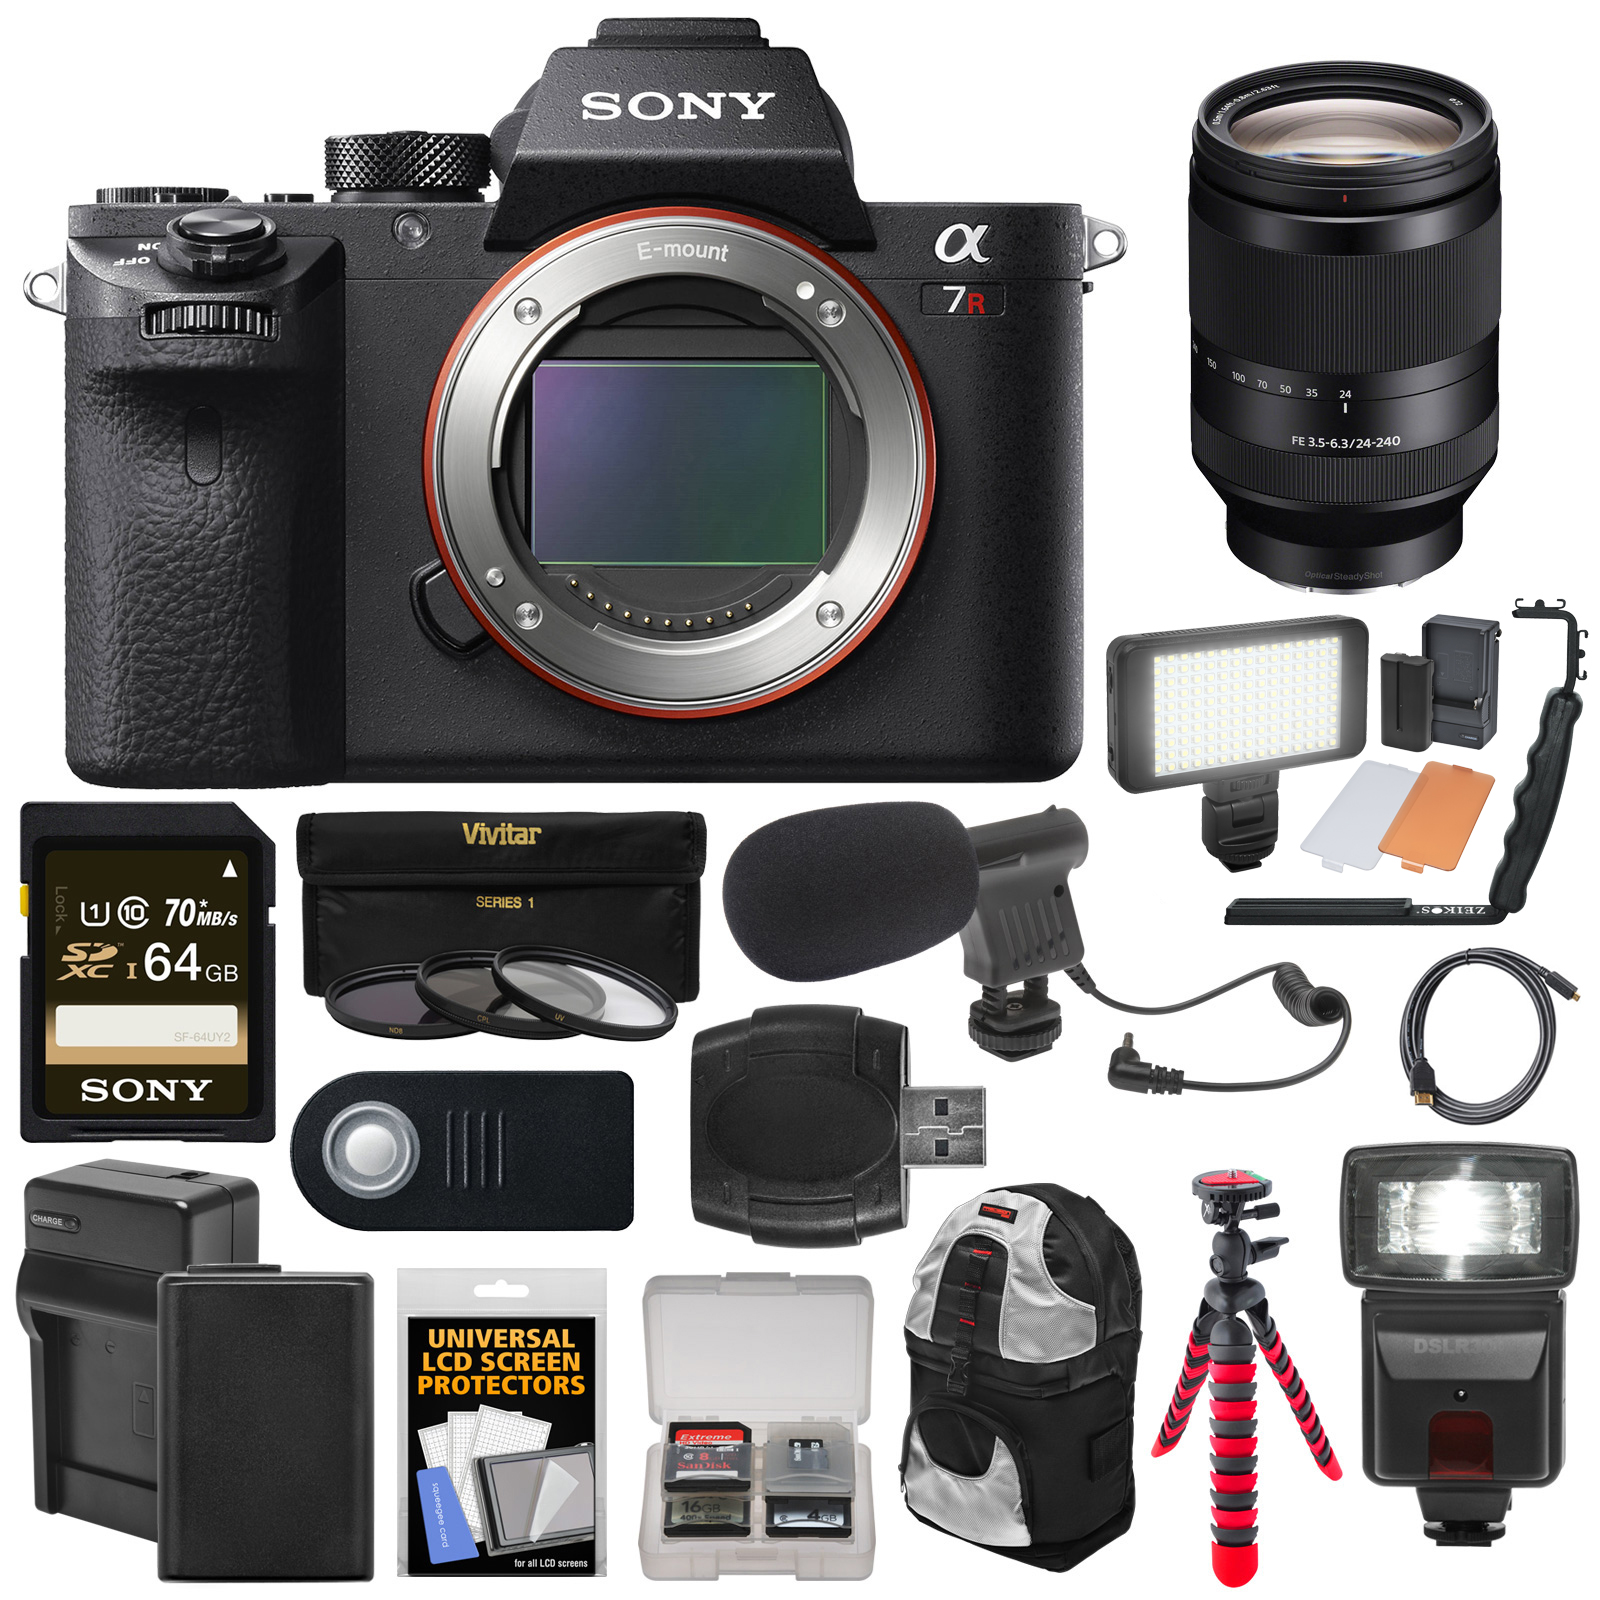 Sony Alpha A7R II 4K Wi-Fi Digital Camera Body with 24-240mm Lens + 64GB Card + Battery + Charger + Backpack +... by Sony